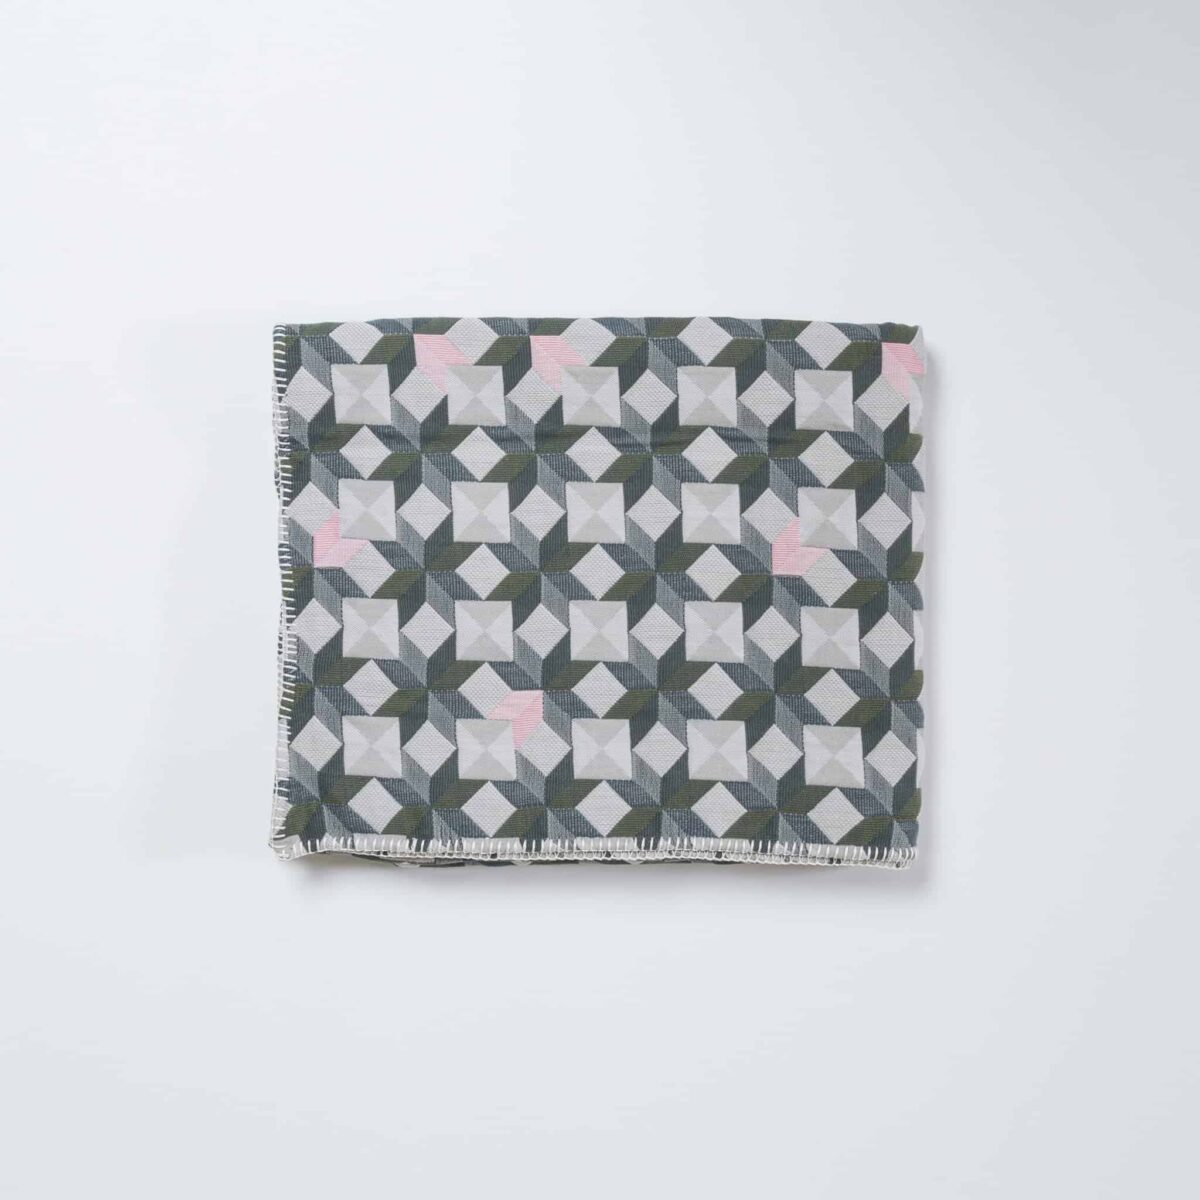 soft-series-blanket-square-small-stars-blue-another-country-002